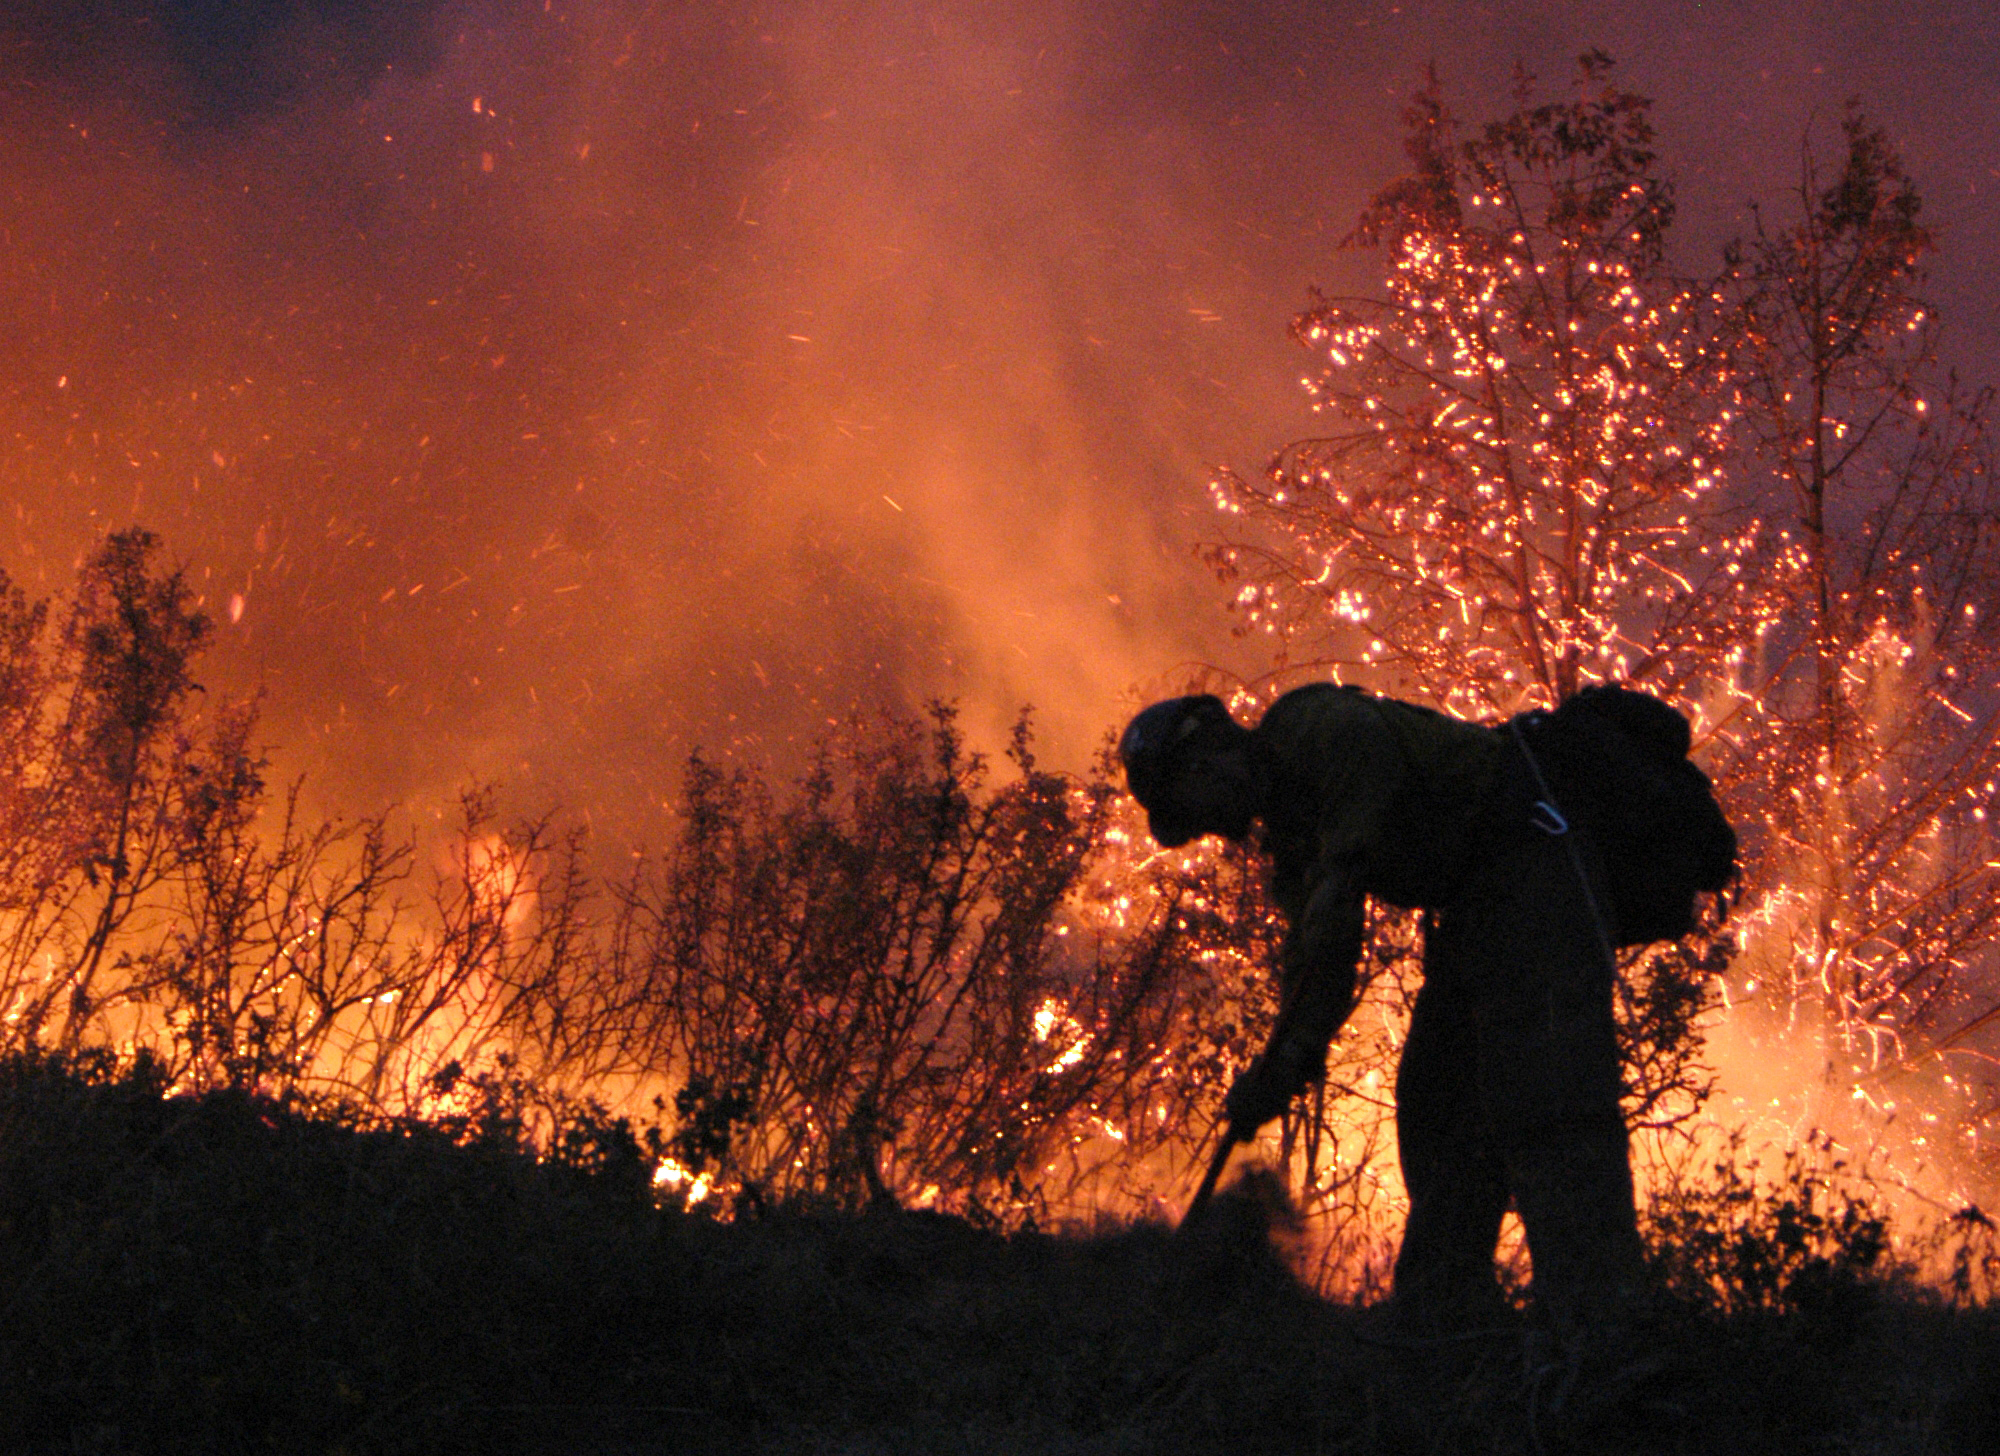 Firefighter works the line during a scrub fire.